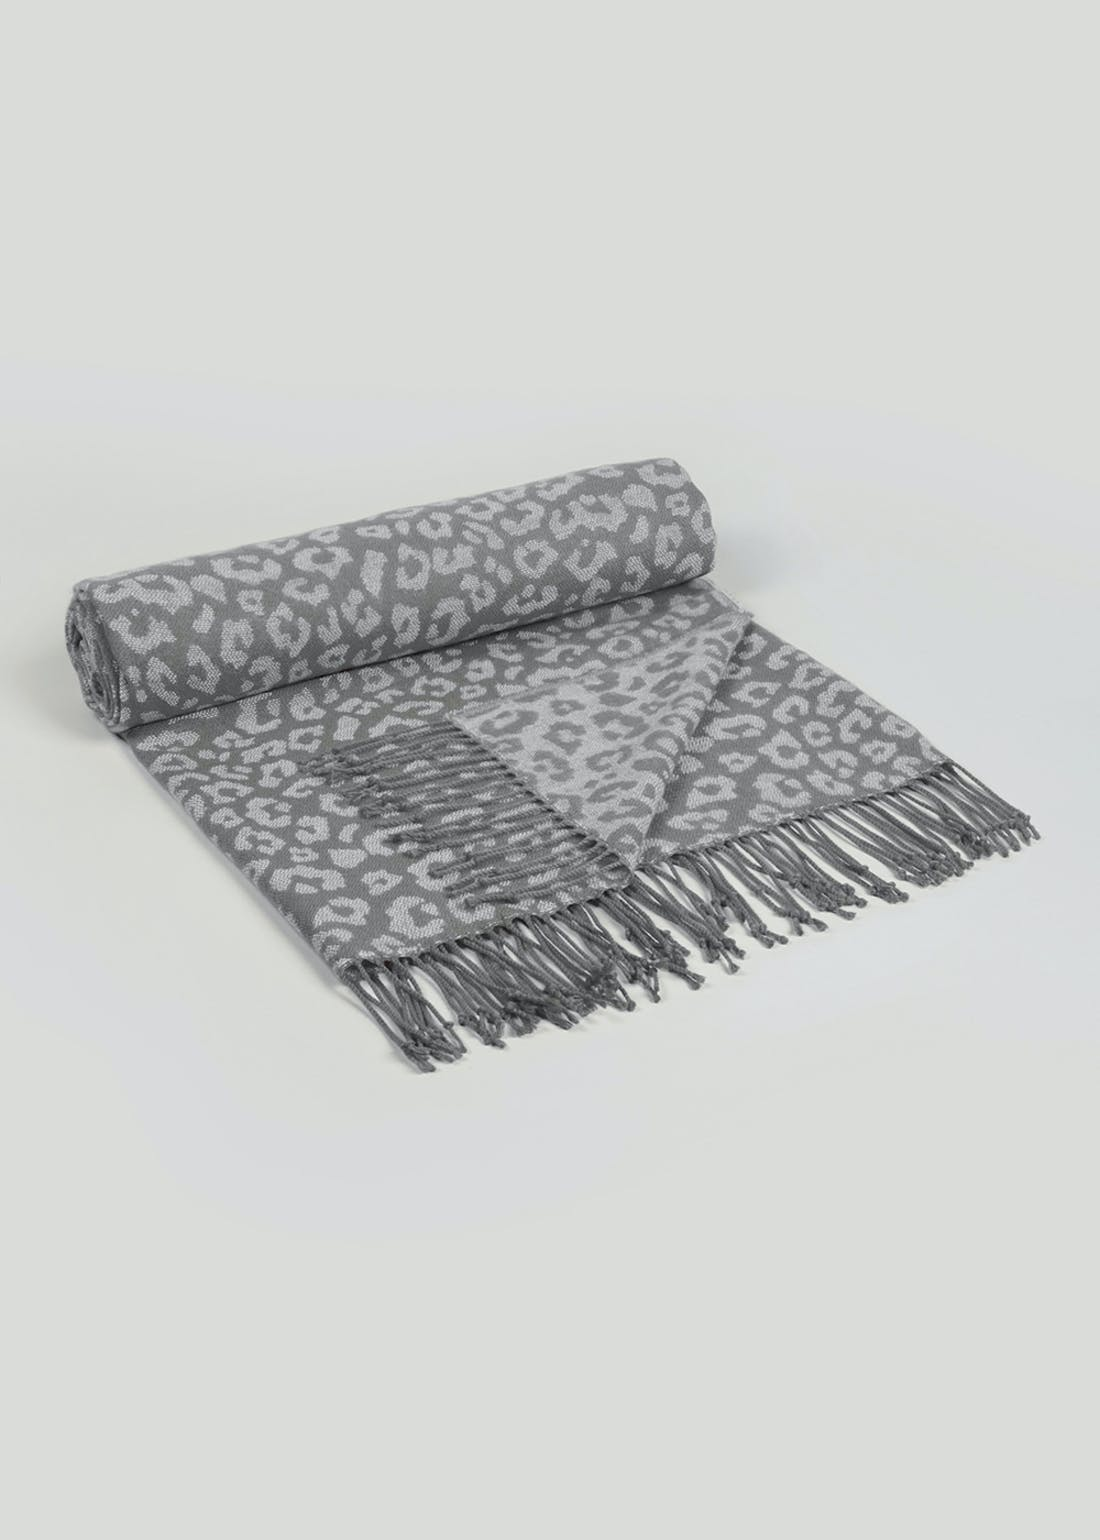 Jacquard Animal Print Throw Blanket (150cm x 130cm)